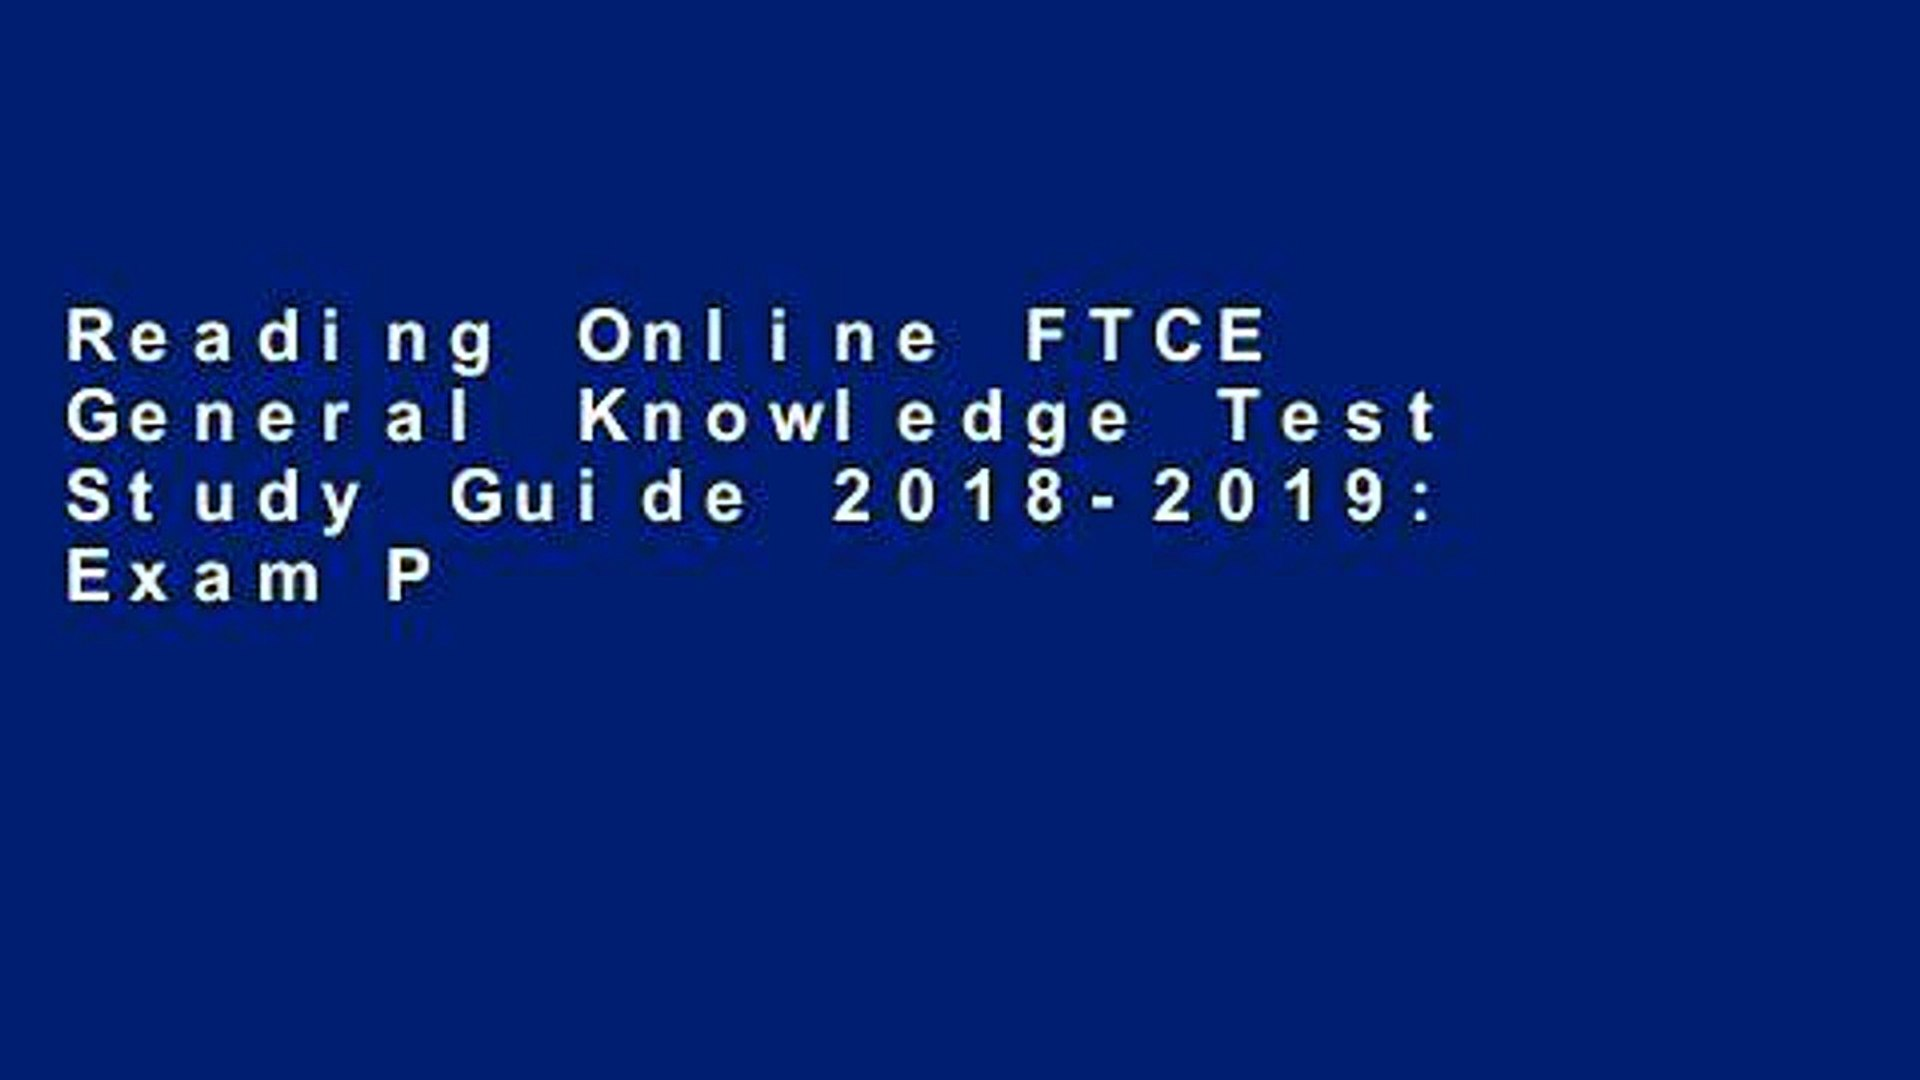 Reading Online FTCE General Knowledge Test Study Guide 2018-2019: Exam Prep  Book and Practice Test